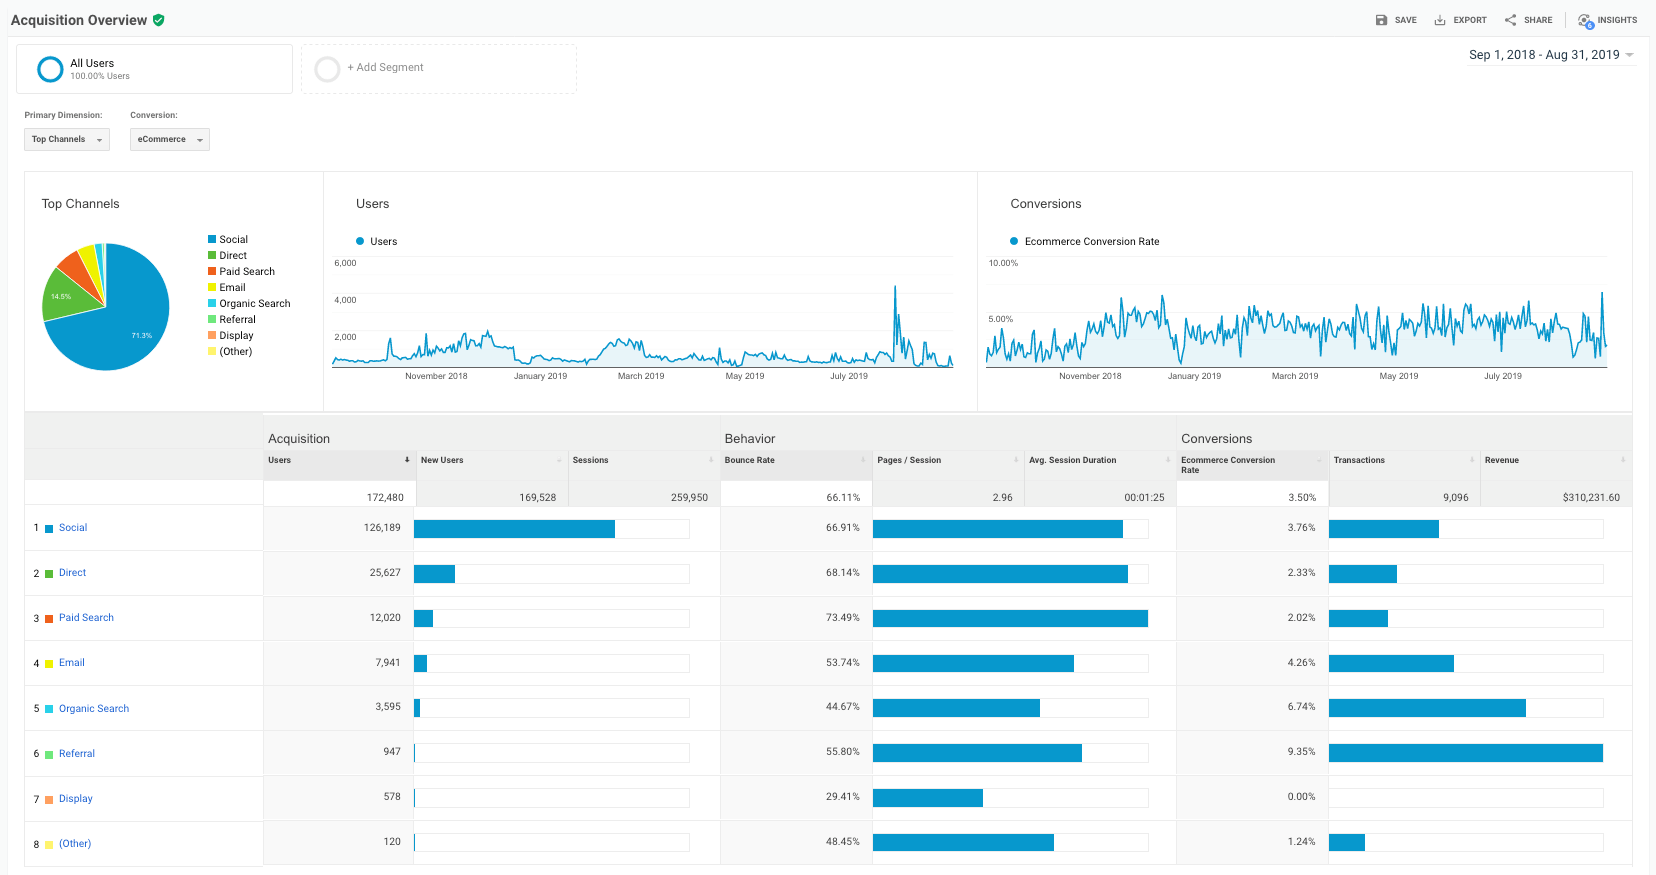 Google Analytics Acquisition Overview Report - Sep18 - Aug19